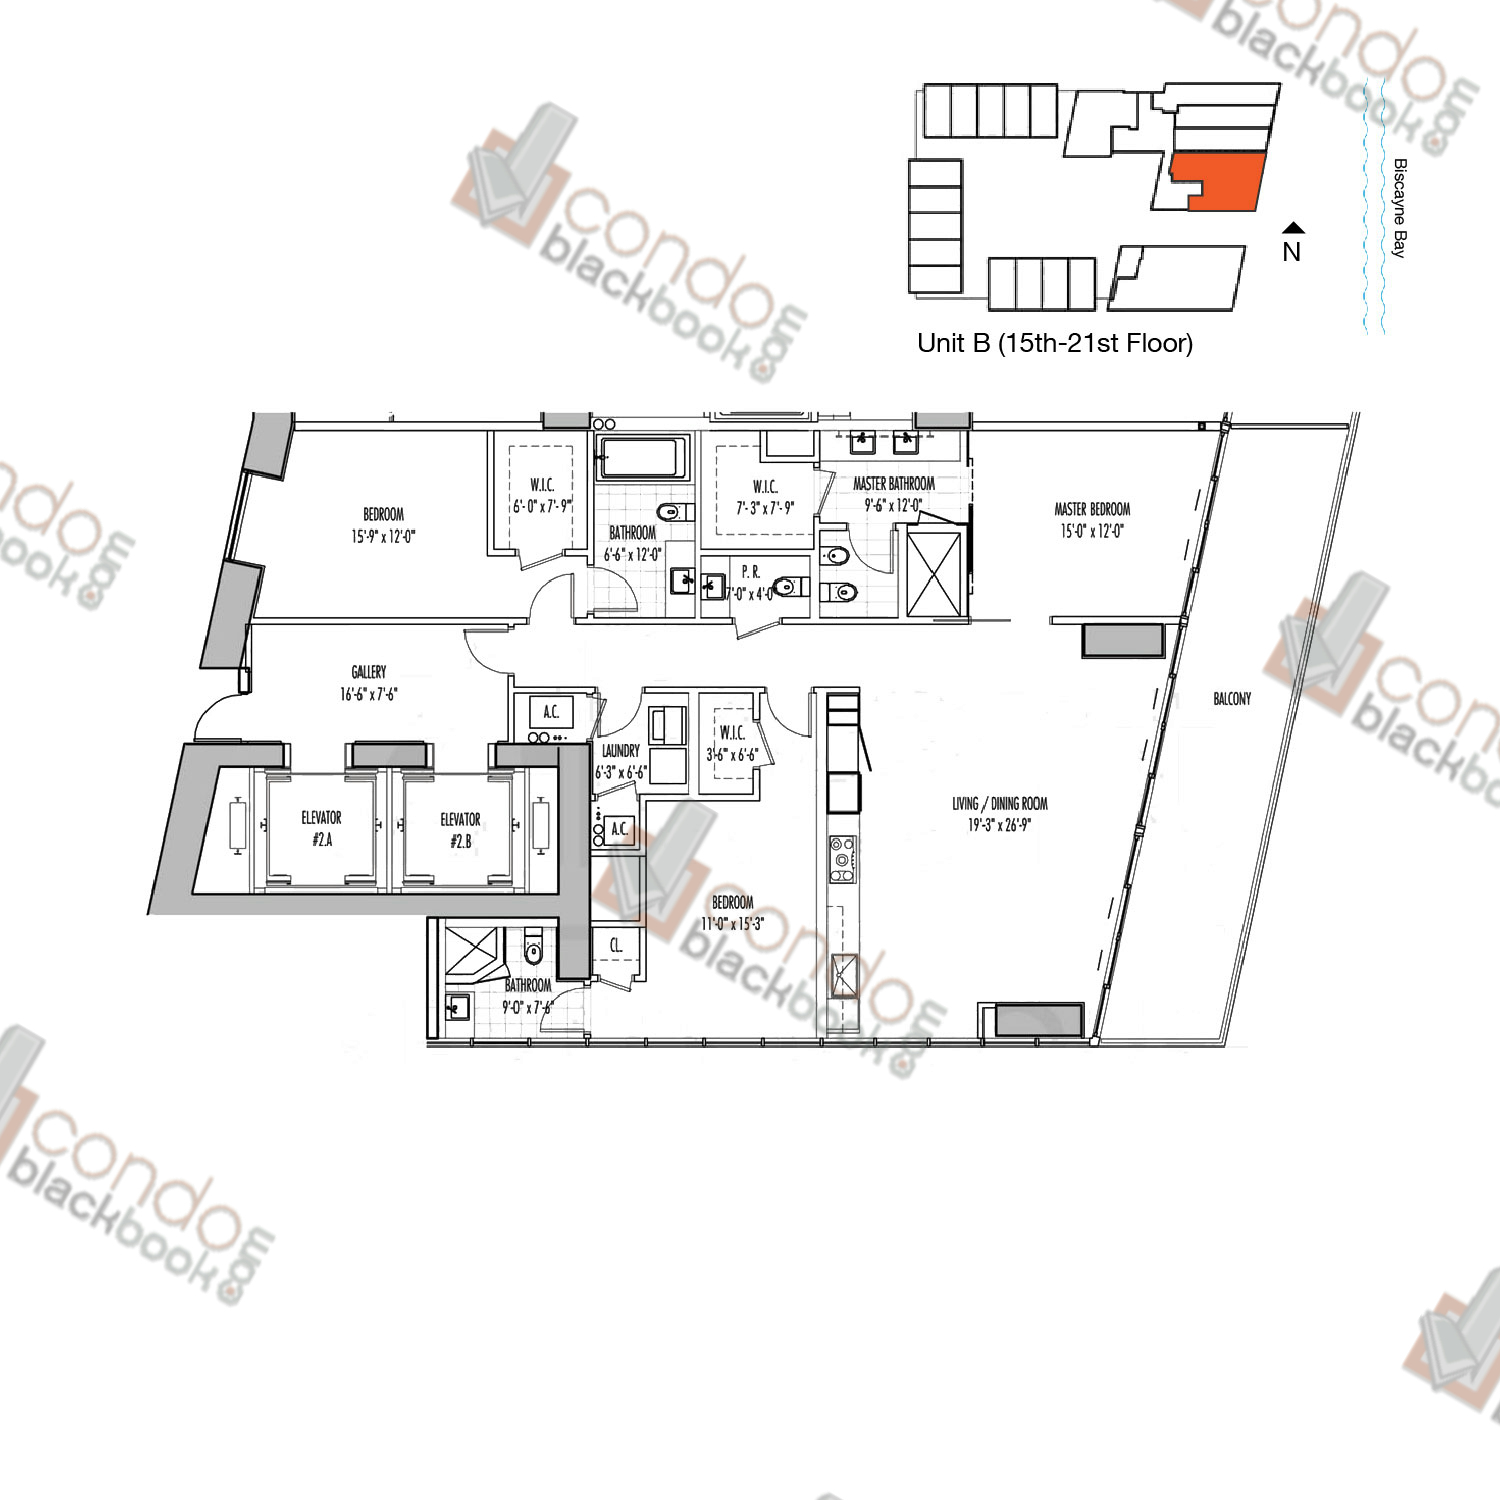 Floor plan for Marquis Downtown Miami Miami, model B, line 02, 3/3.5 bedrooms, 2,046 sq ft